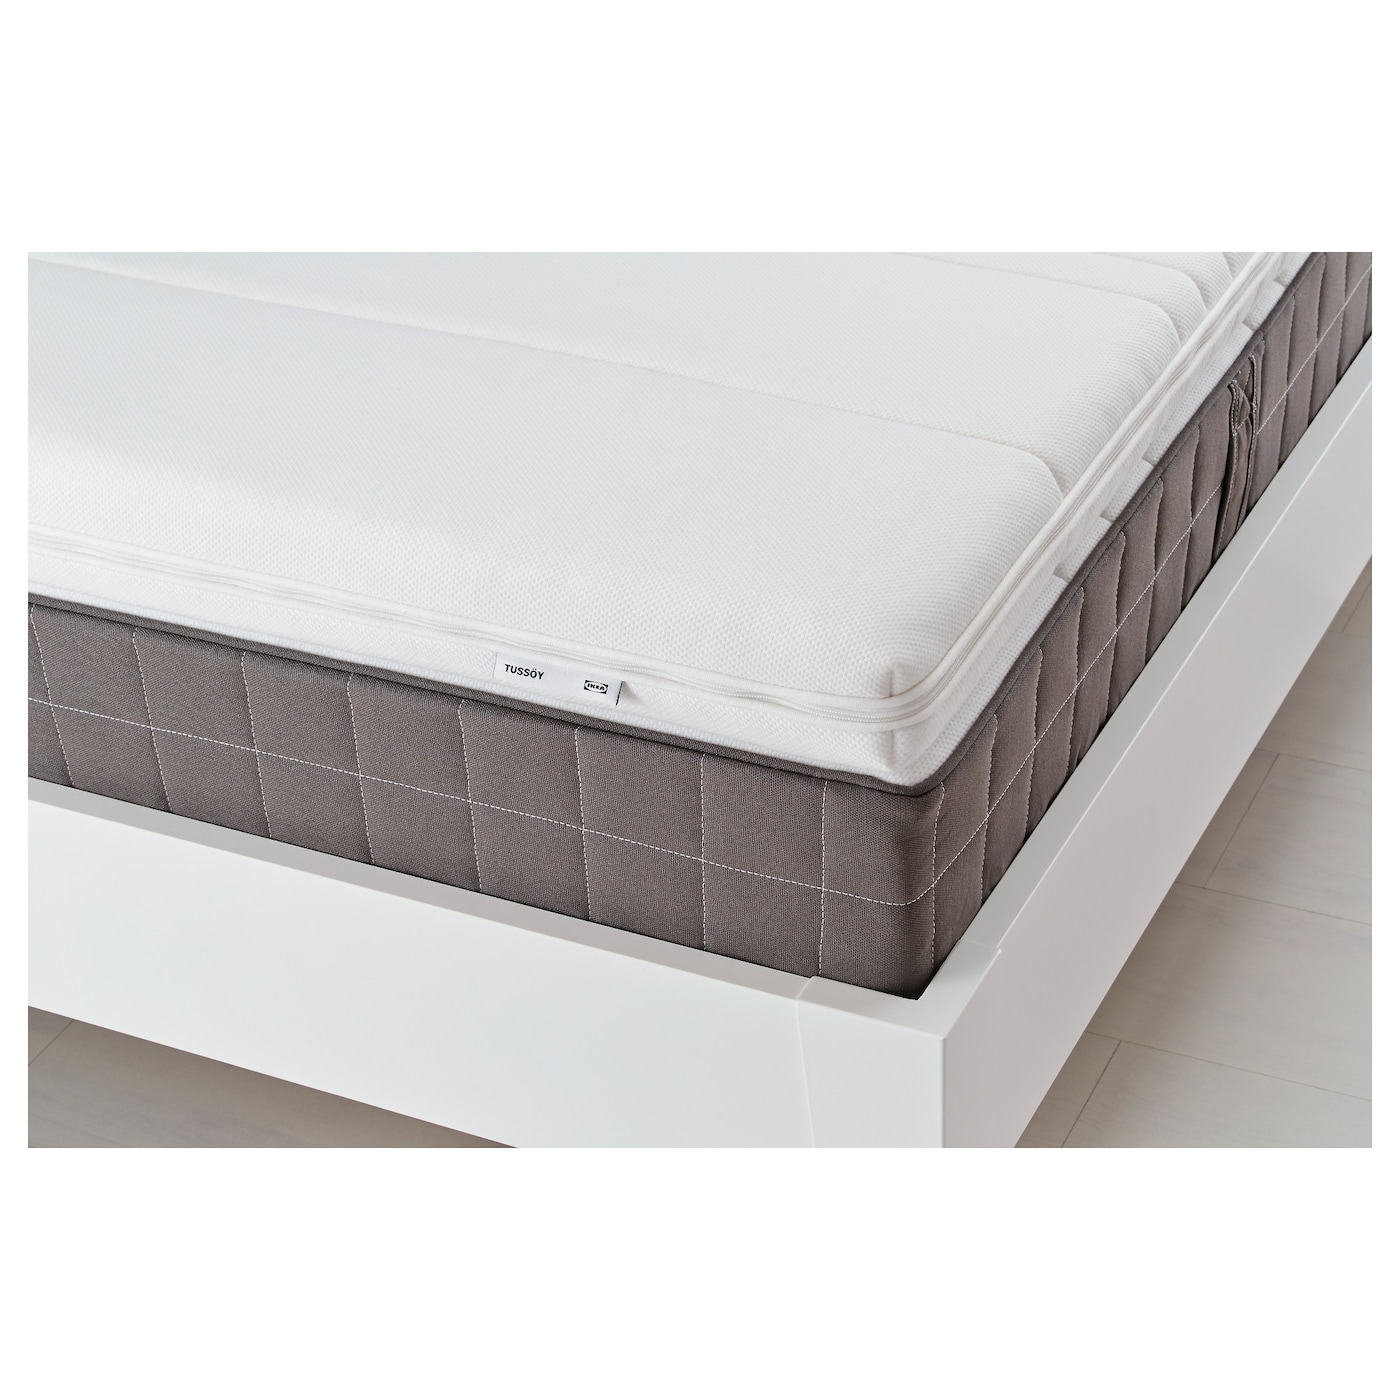 surmatelas 80x200 memoire de forme excellent matelas. Black Bedroom Furniture Sets. Home Design Ideas